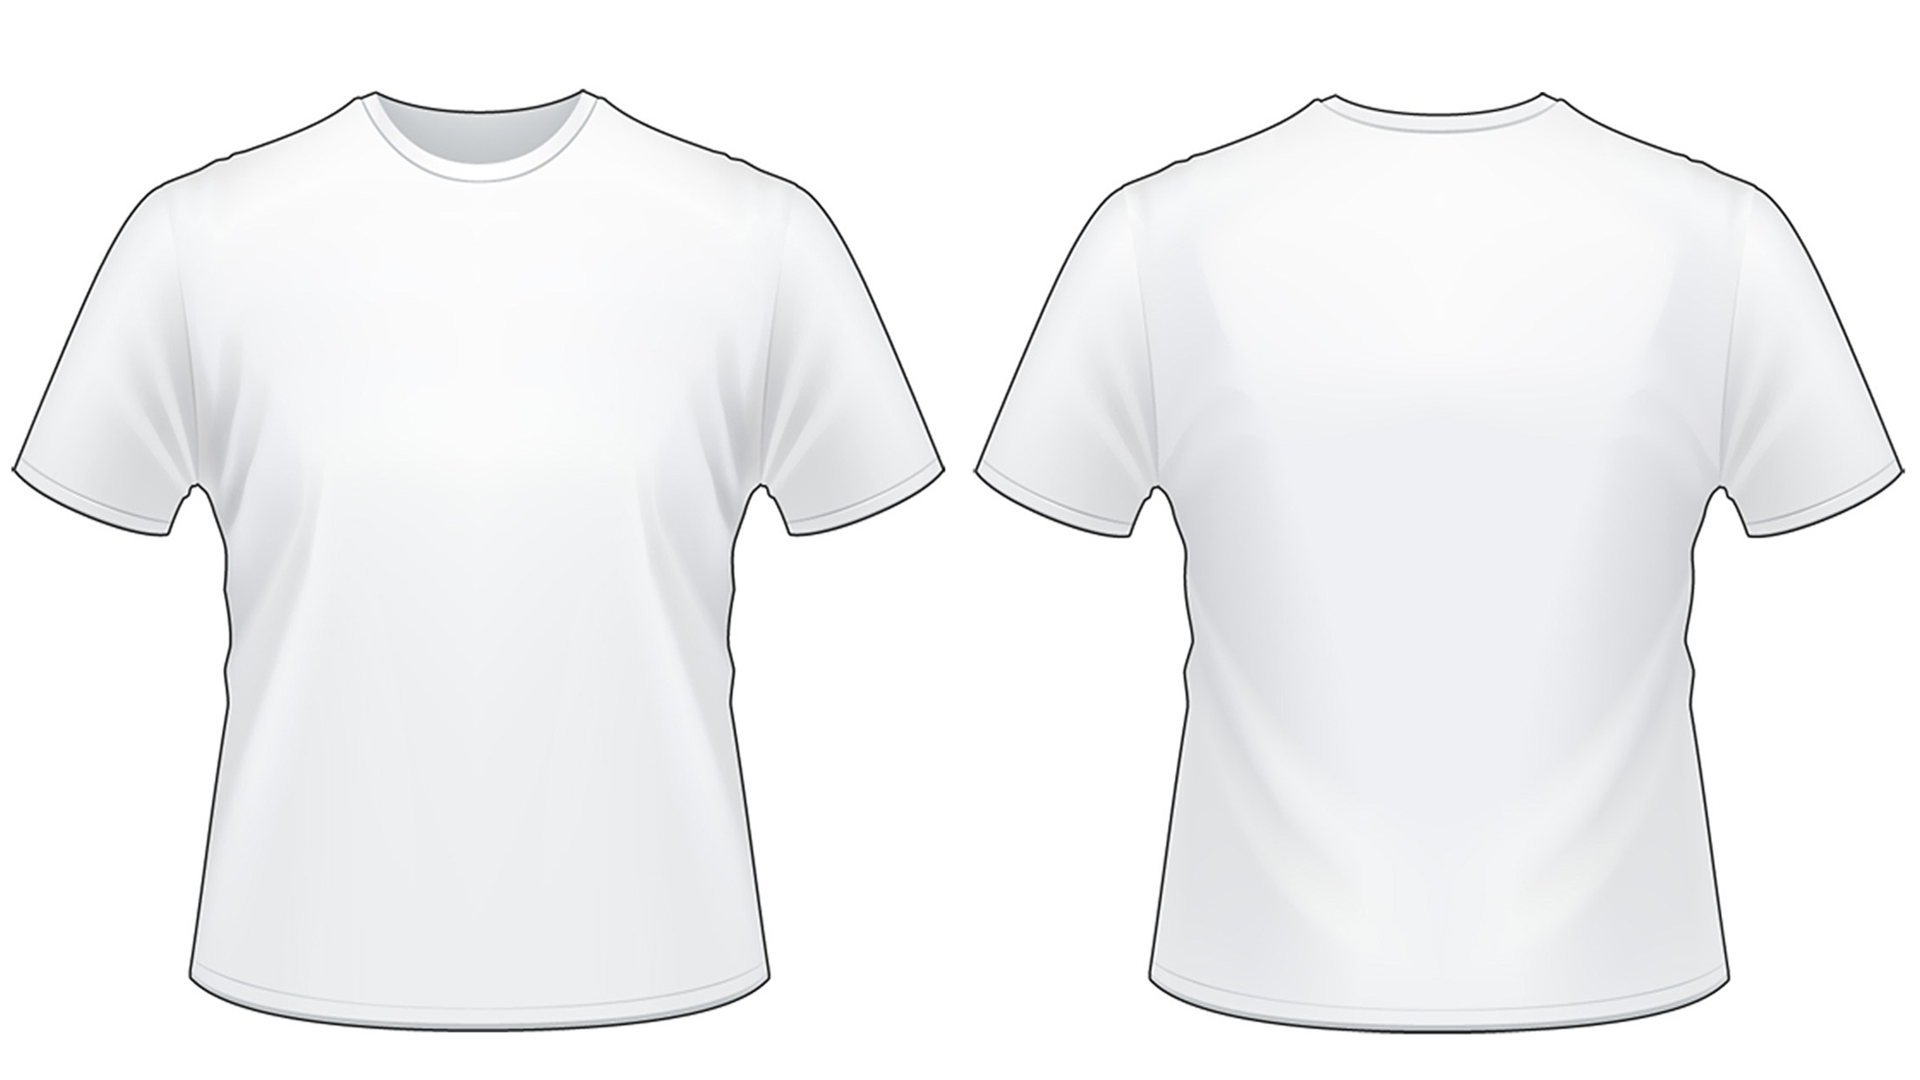 Blank tshirt template worksheet in png hd wallpapers for T shirt template with model